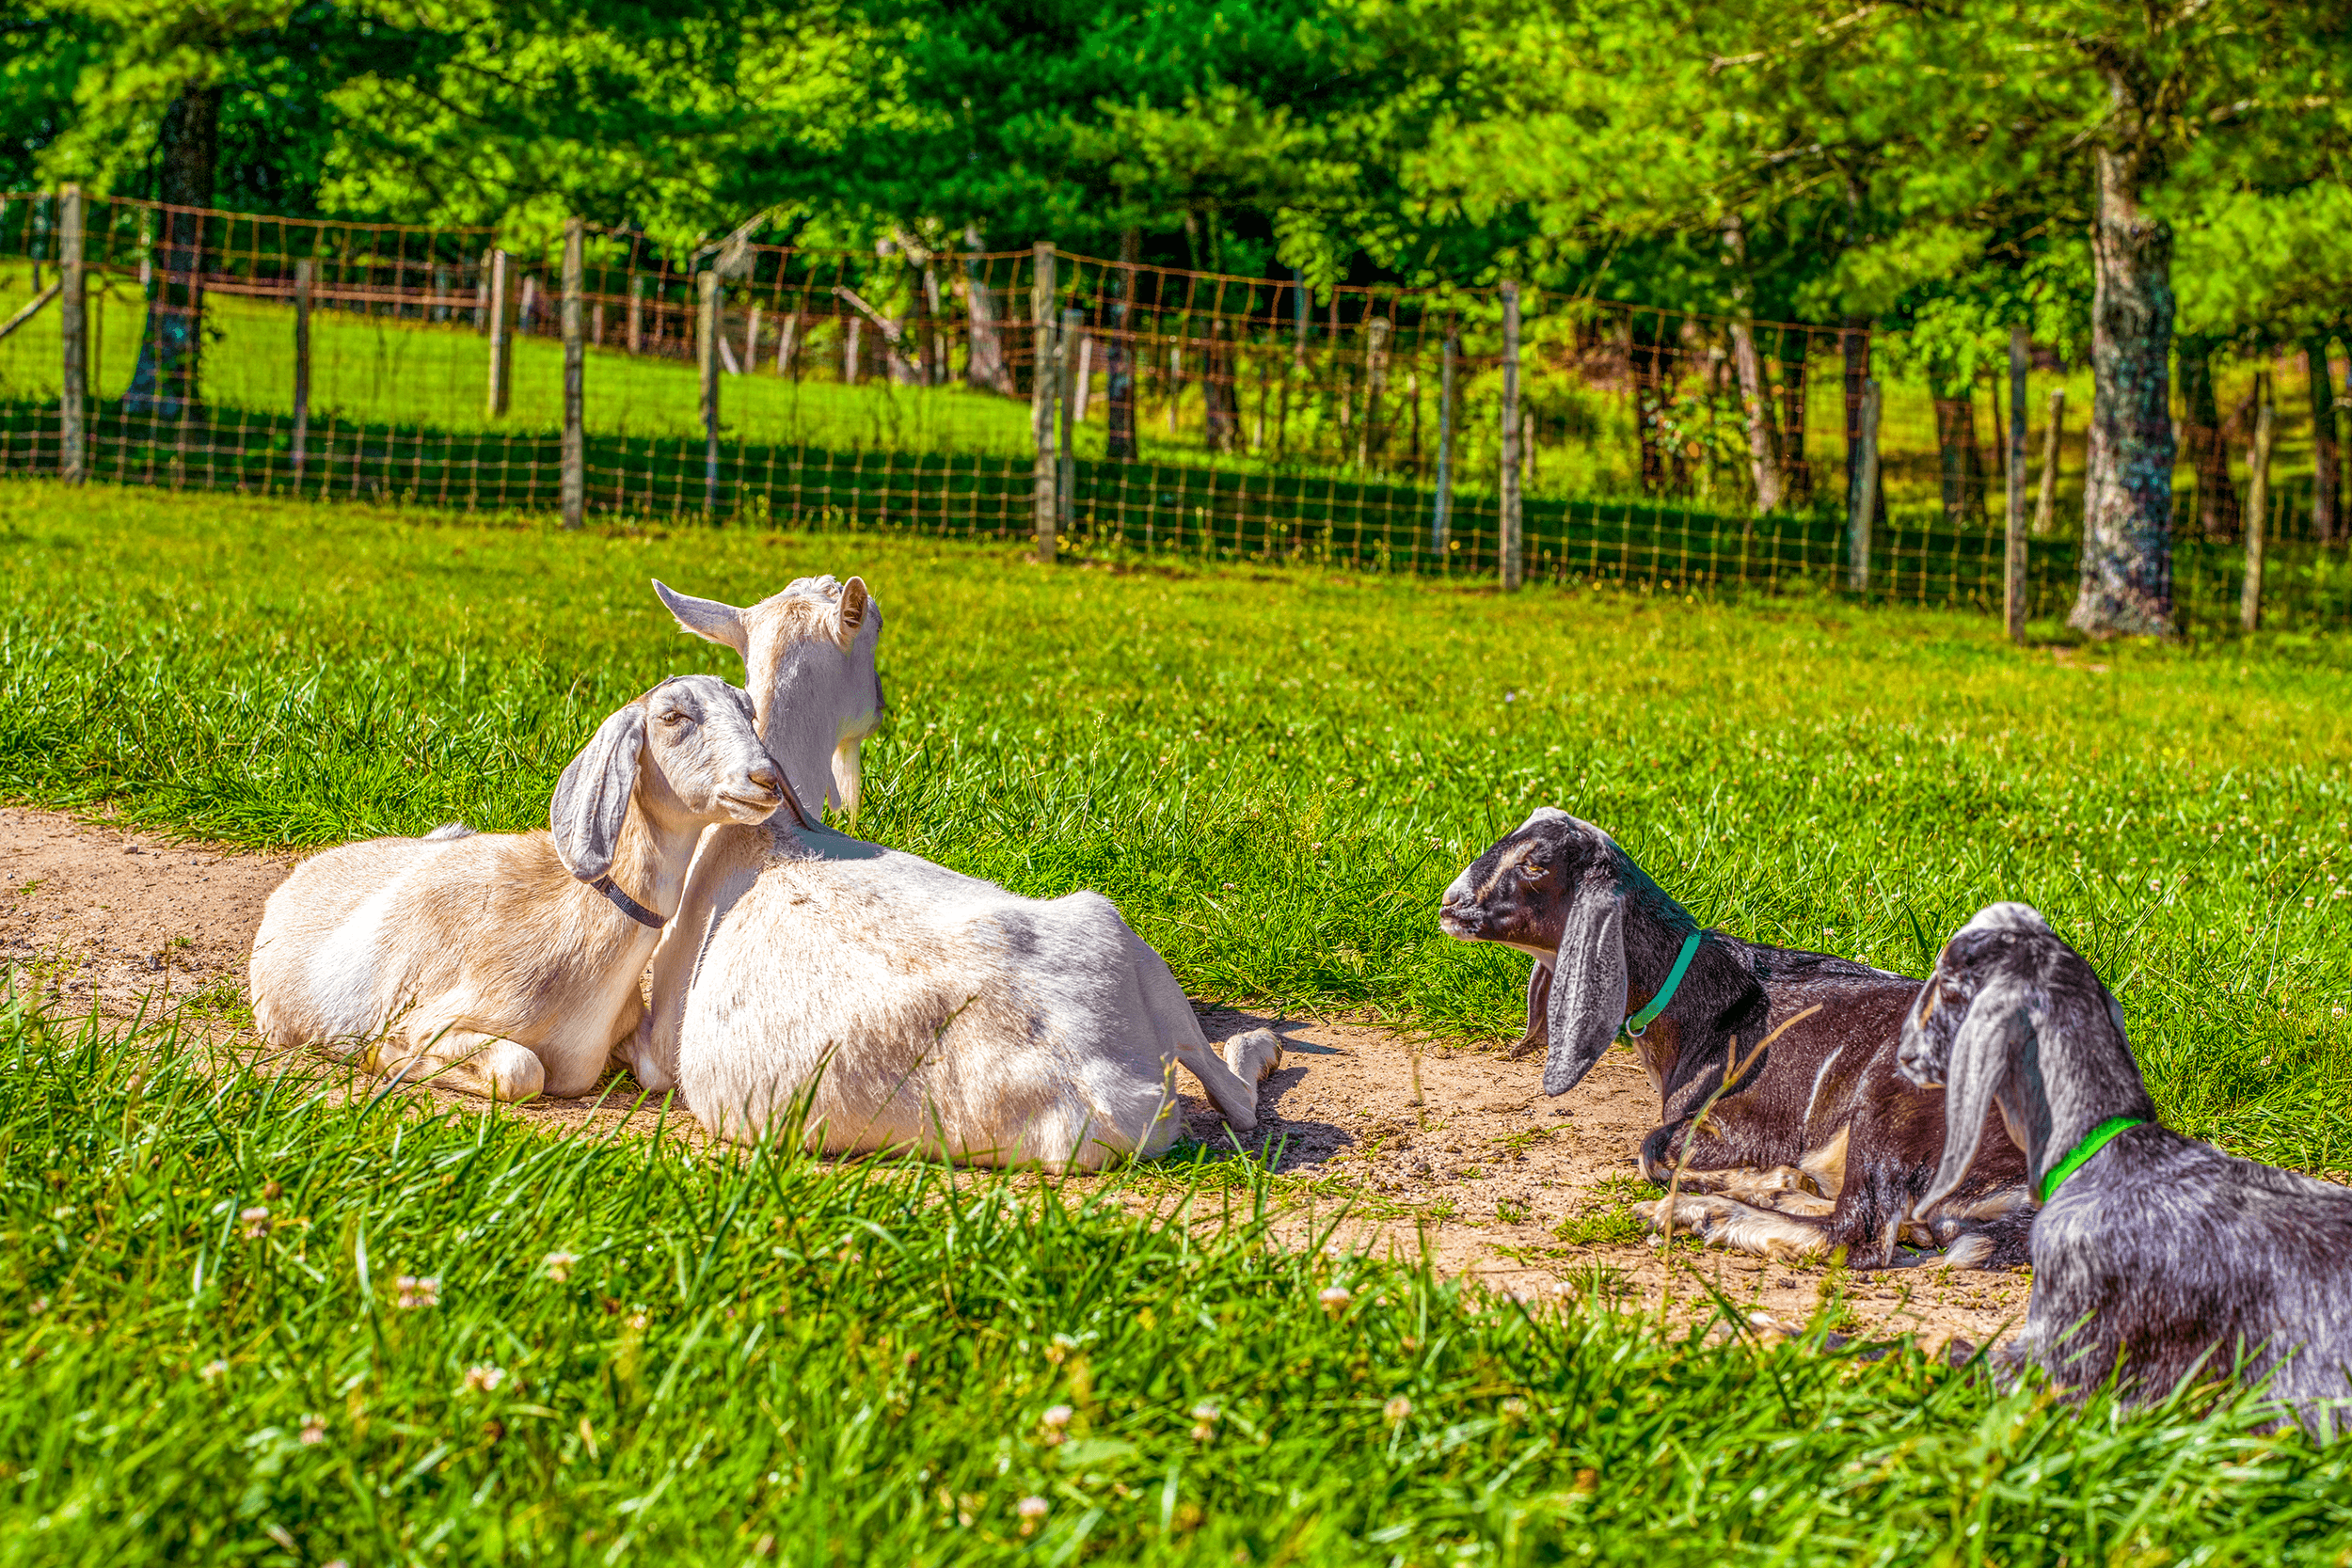 After the estate became a national historic site in 1968, the goats, which were once raised by Lilian, were declared a  Historic Herd  by the U.S. Government.